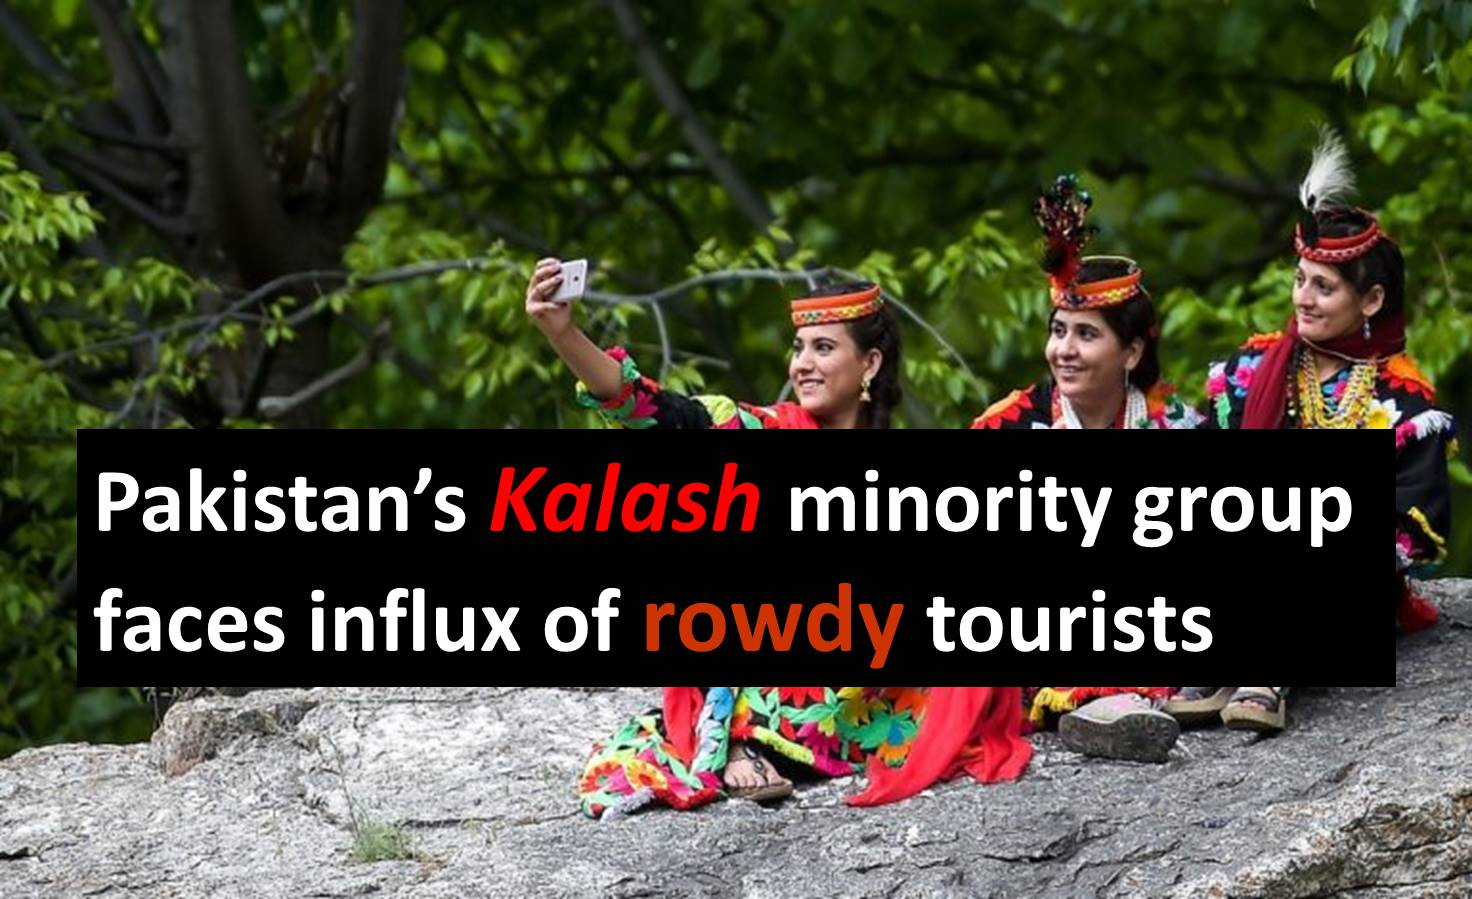 Pakistan's #Kalash minority group faces influx of rowdy tourists